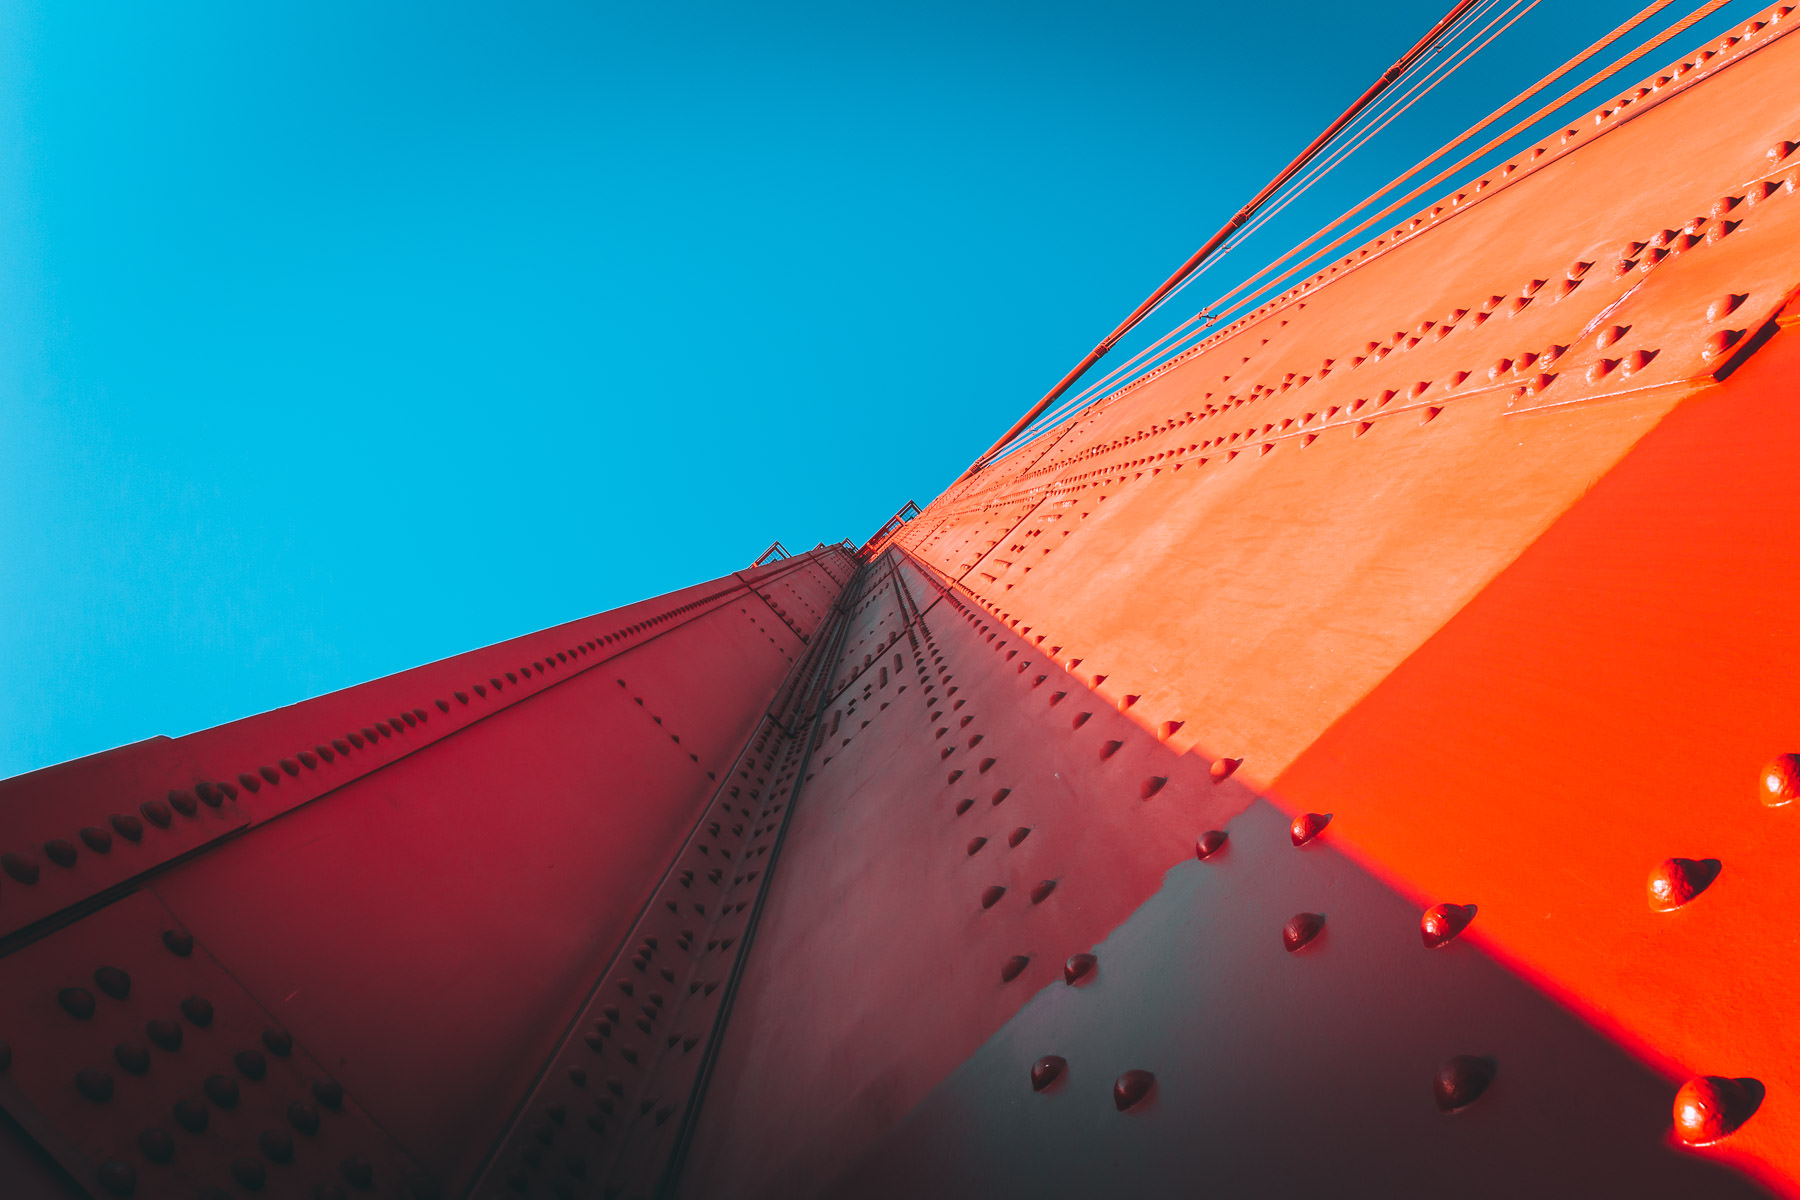 The South tower of San Francisco's Golden Gate Bridge reaches 746 feet into the cloudless sky of the Bay Area.